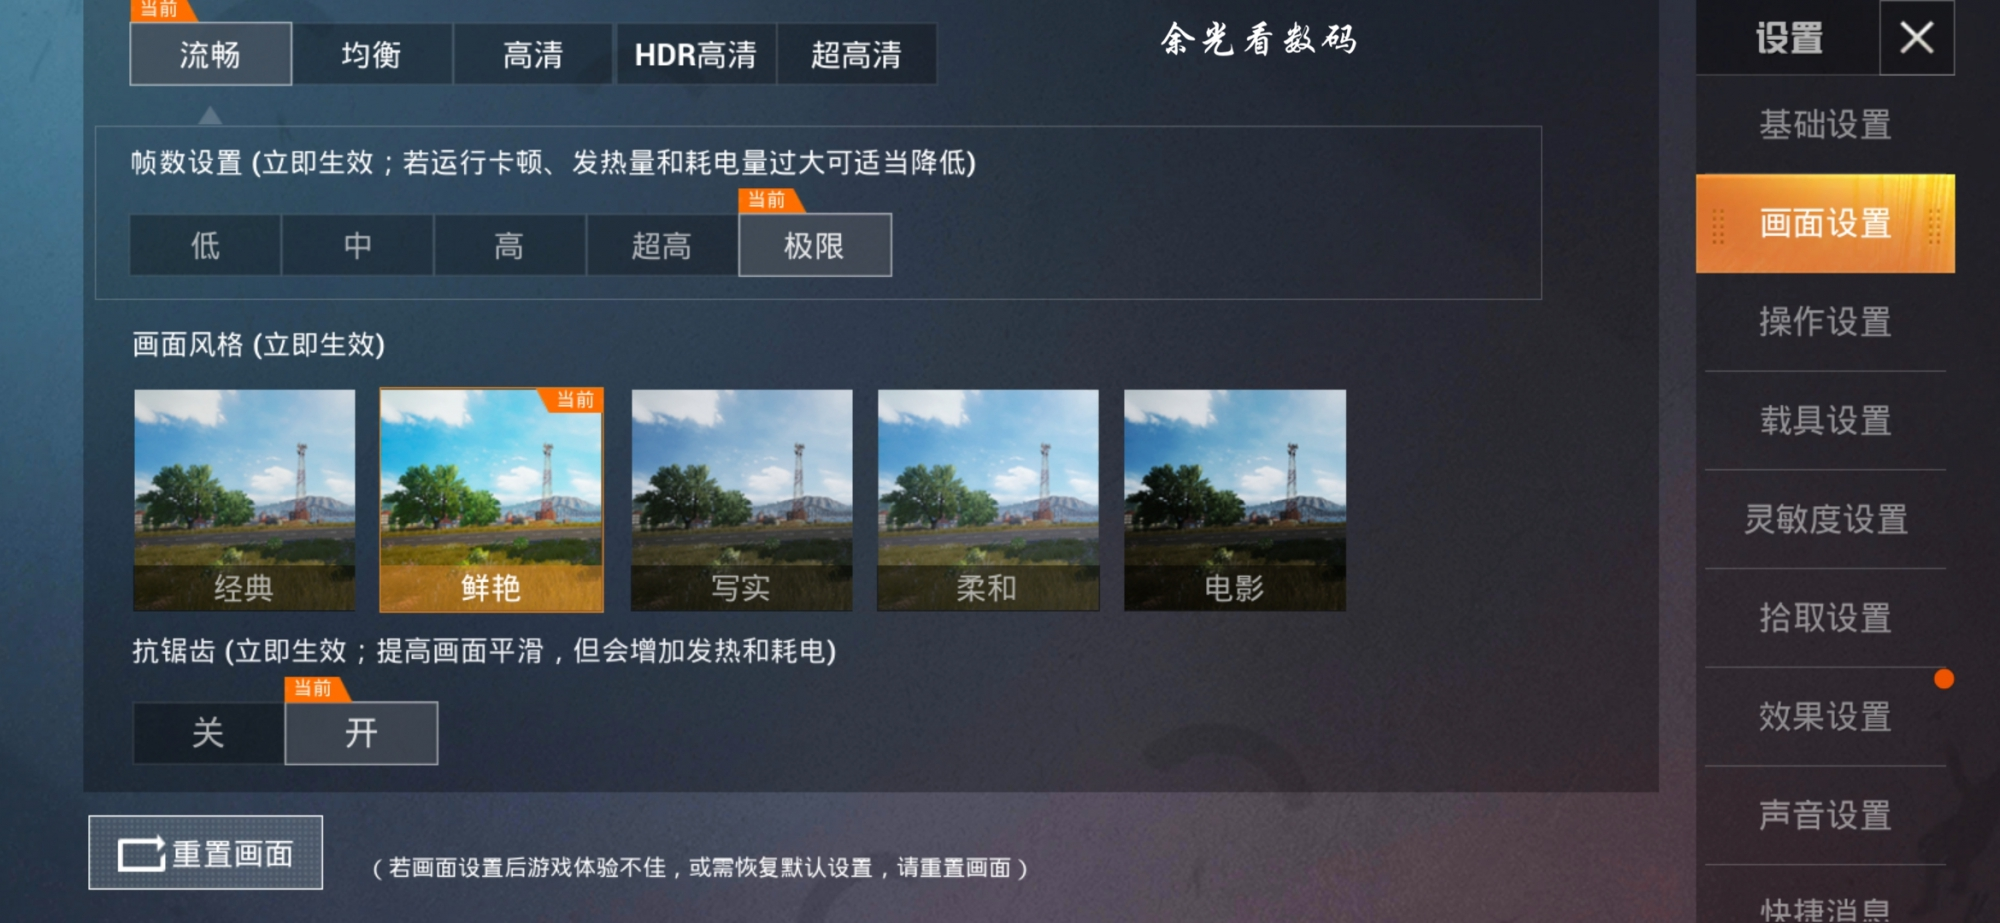 Screenshot_20190630_120811_com.tencent.tmgp.pubgmhd.jpg